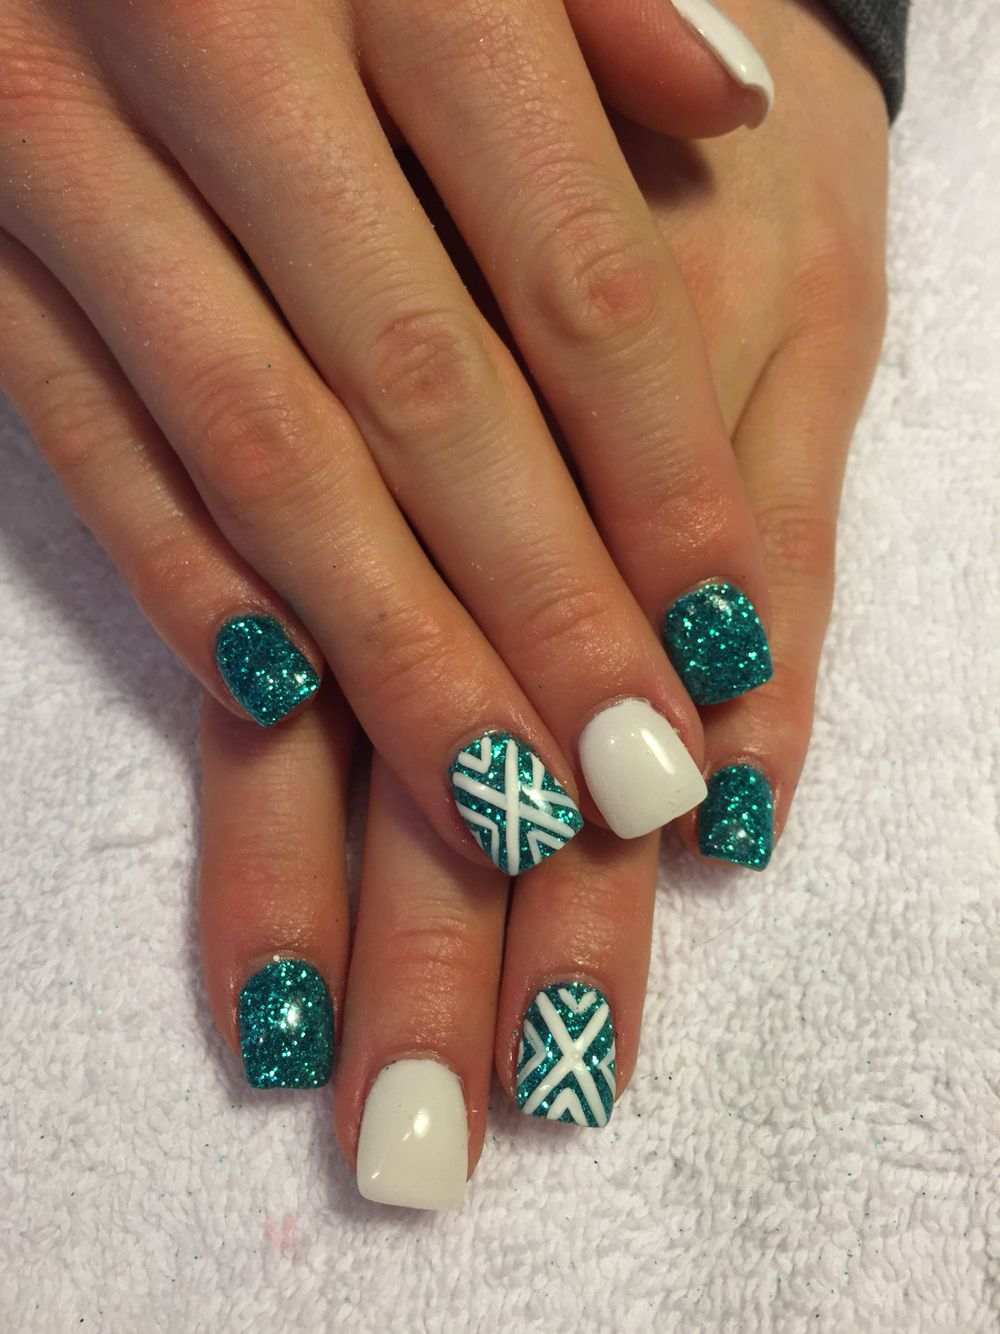 Teal gel nails